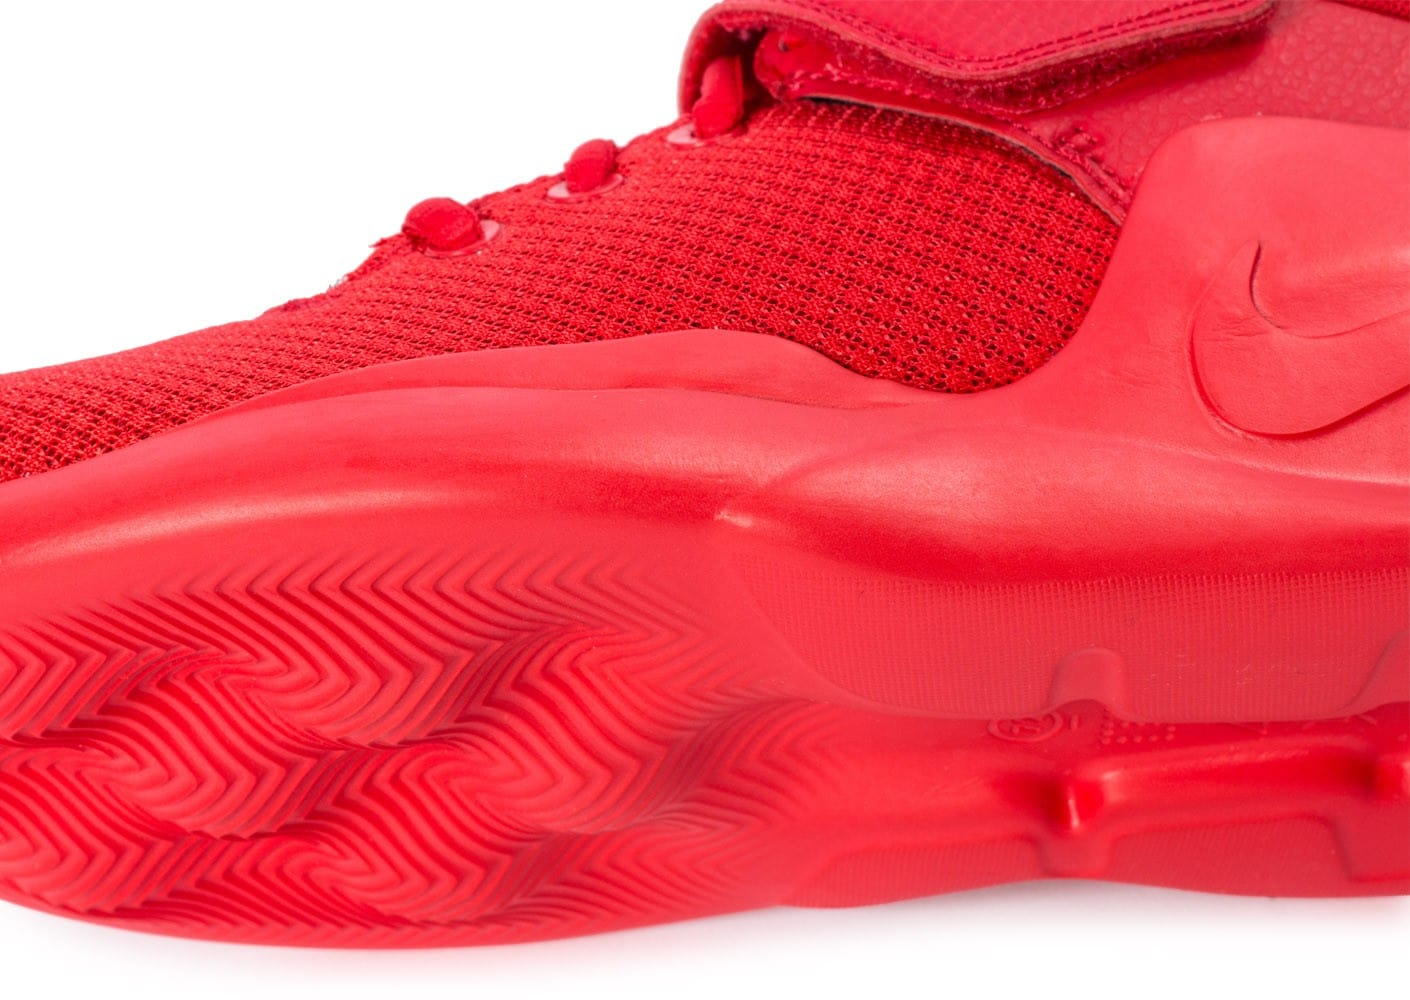 outlet store 68f82 f208f ... Chaussures Nike Kwazi Rouge vue dessus